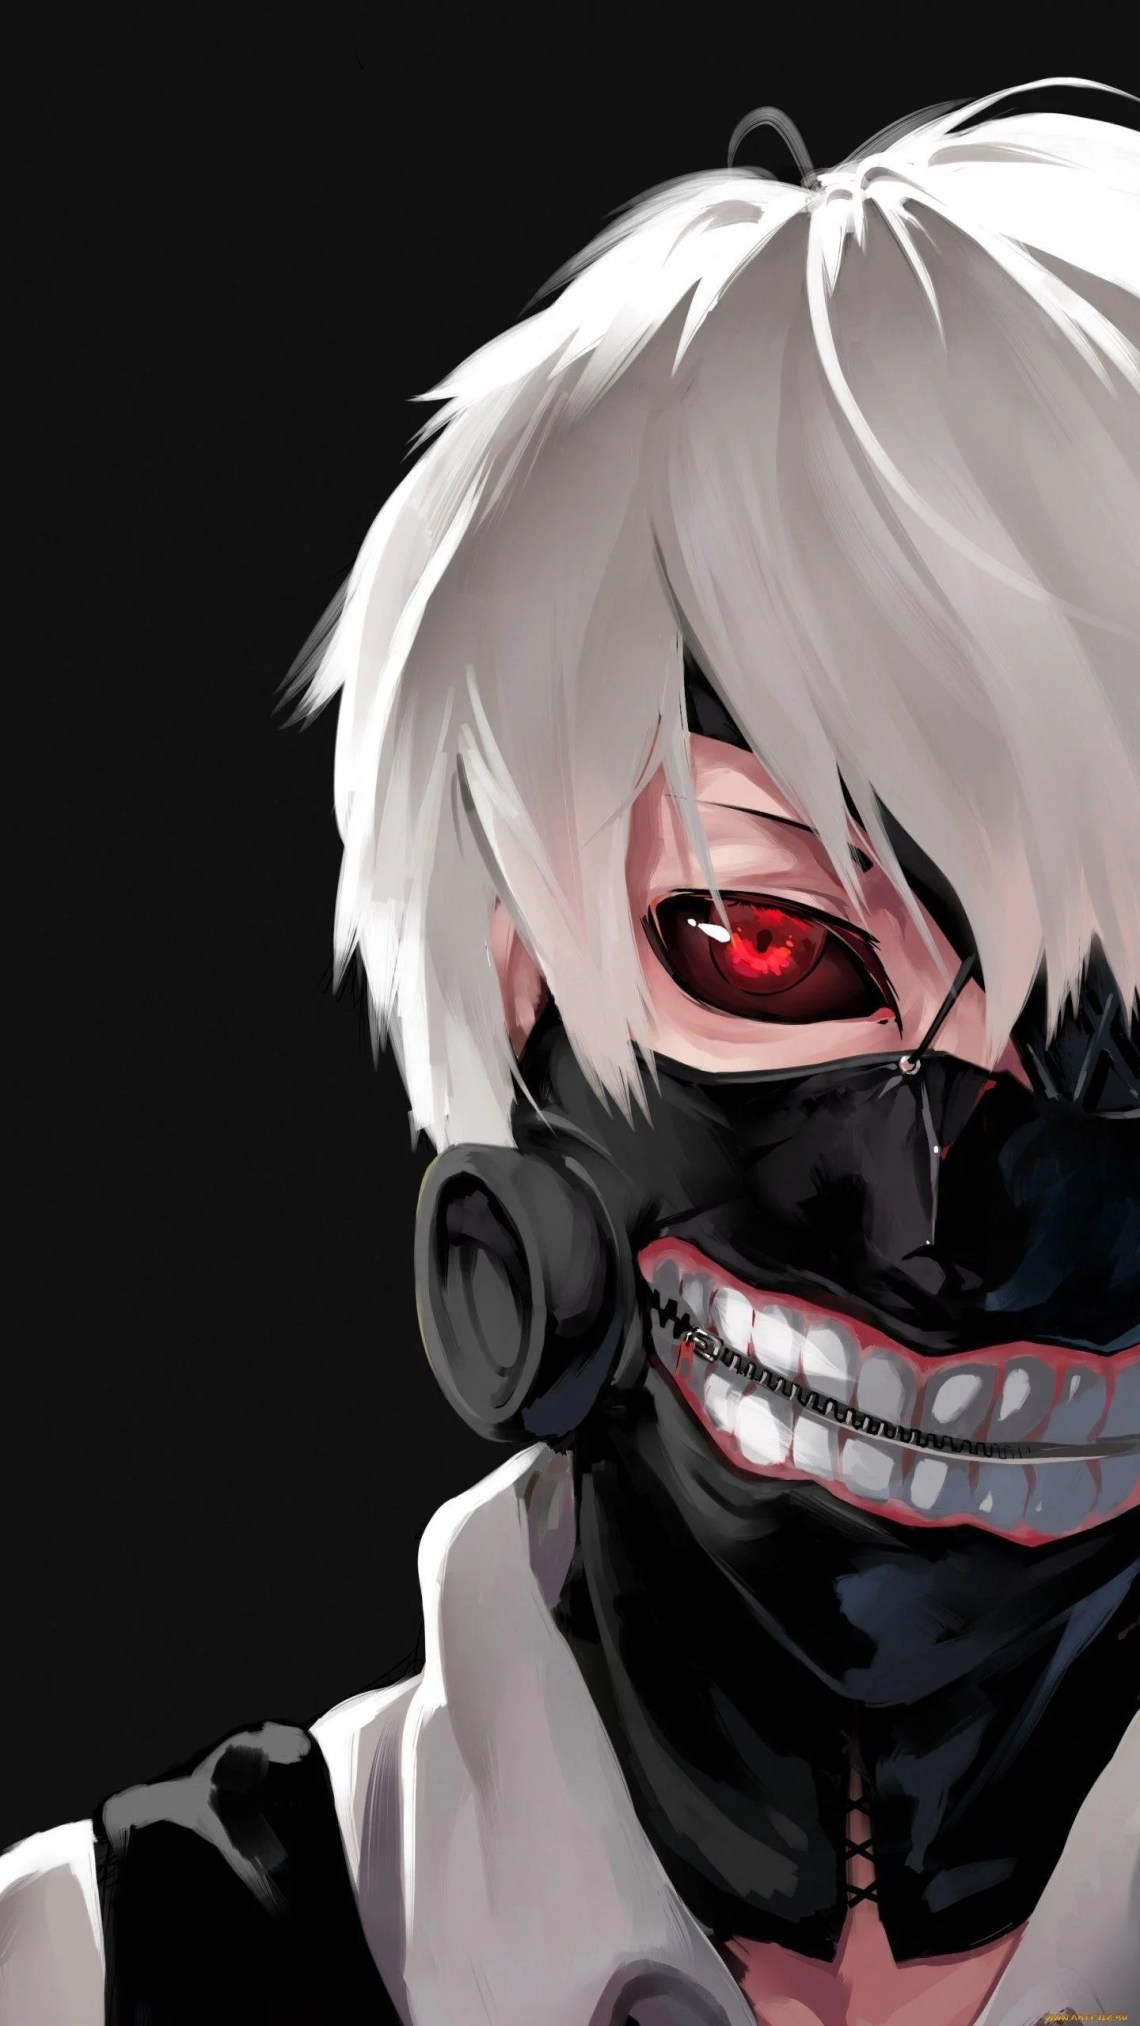 Tokyo Ghoul Android Phone Wallpapers Wallpaper Cave